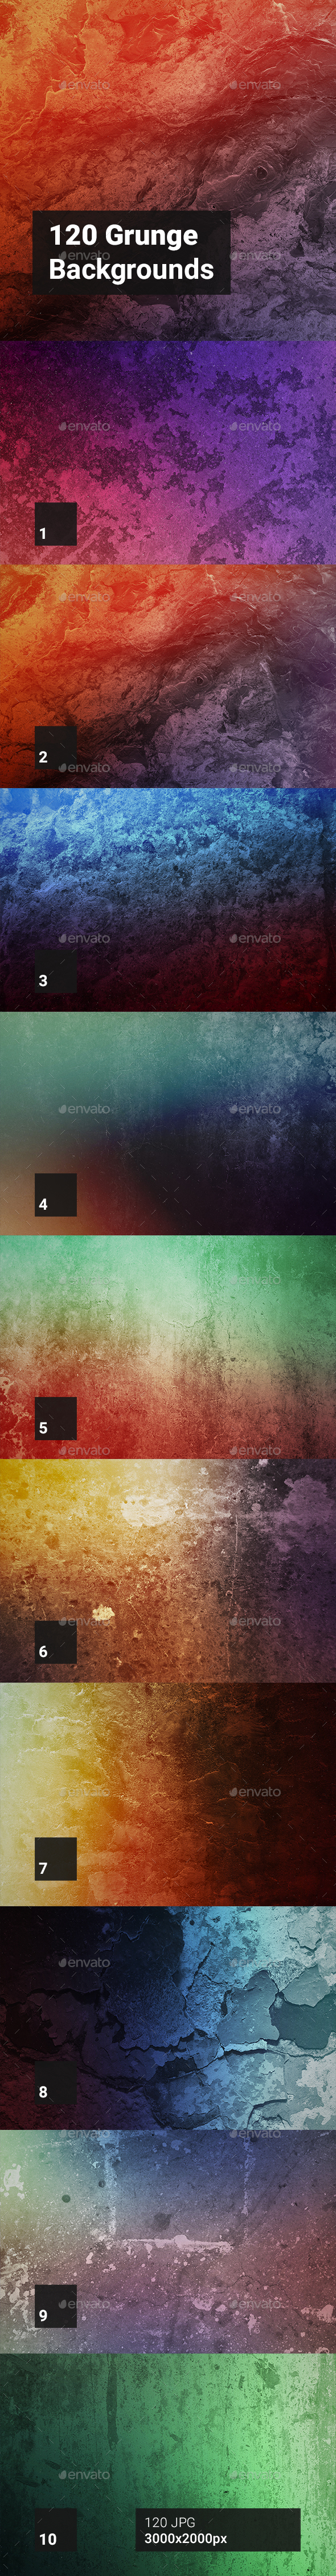 120 Grunge Backgrounds - Abstract Backgrounds